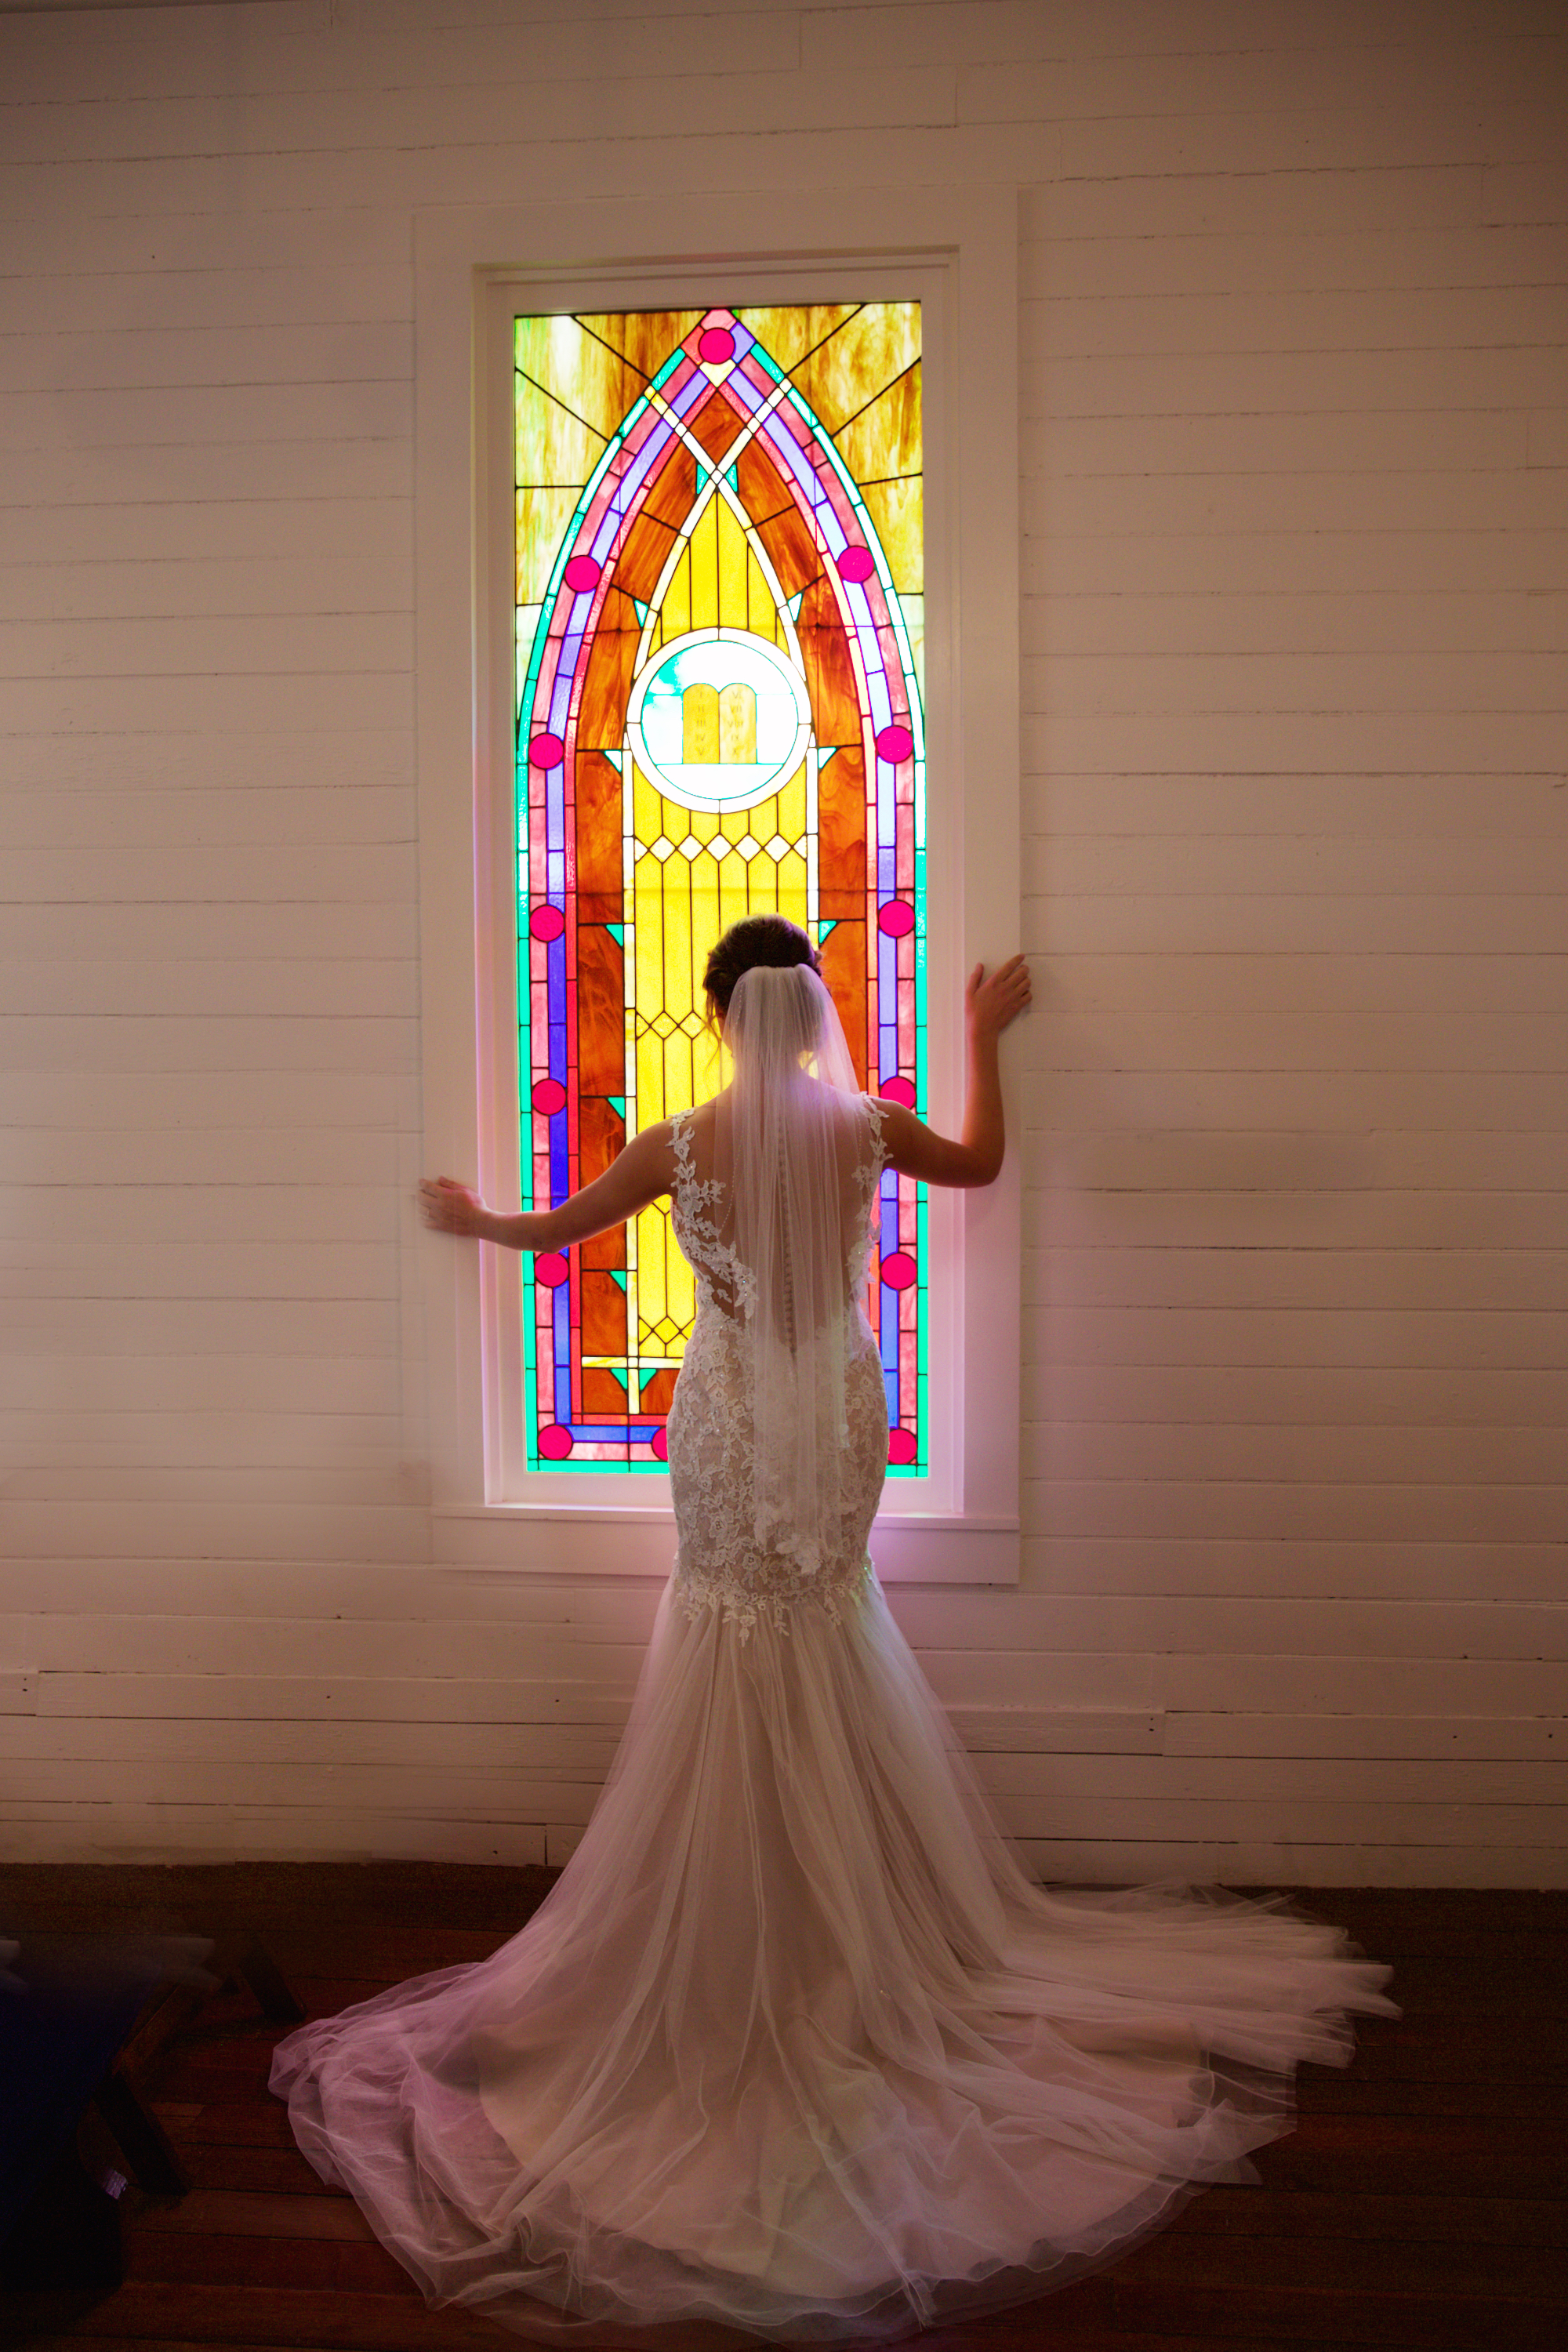 11stained-glass-bridal-portrait.jpg